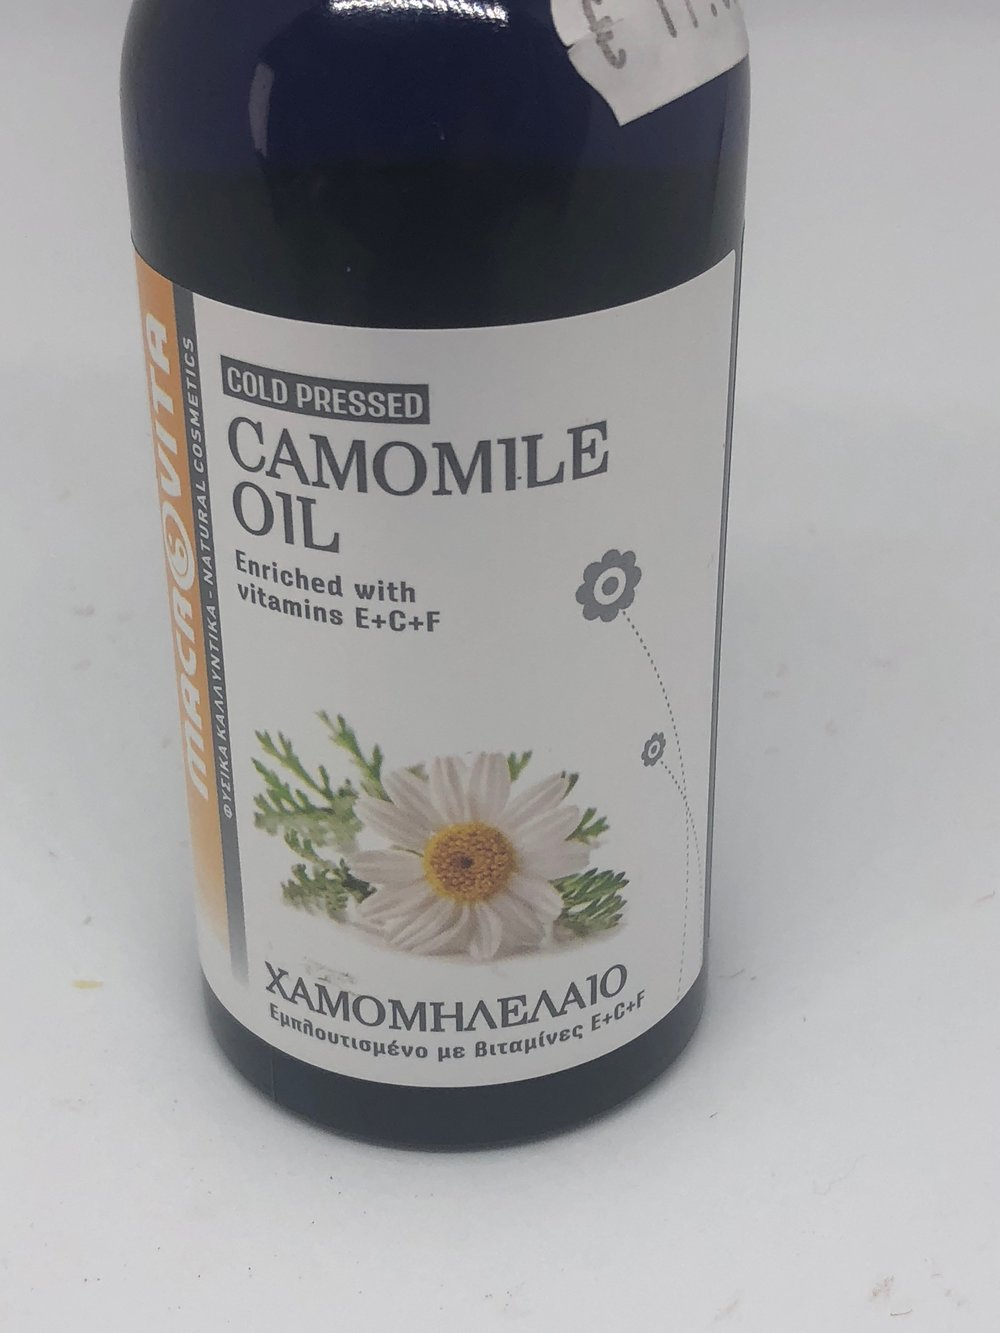 - Local Greek Camomile Essential Oilsought after as an anti-inflammatory and helps regenerate cells and tighten pores. Sounds like thats going in my next nighttime cream!